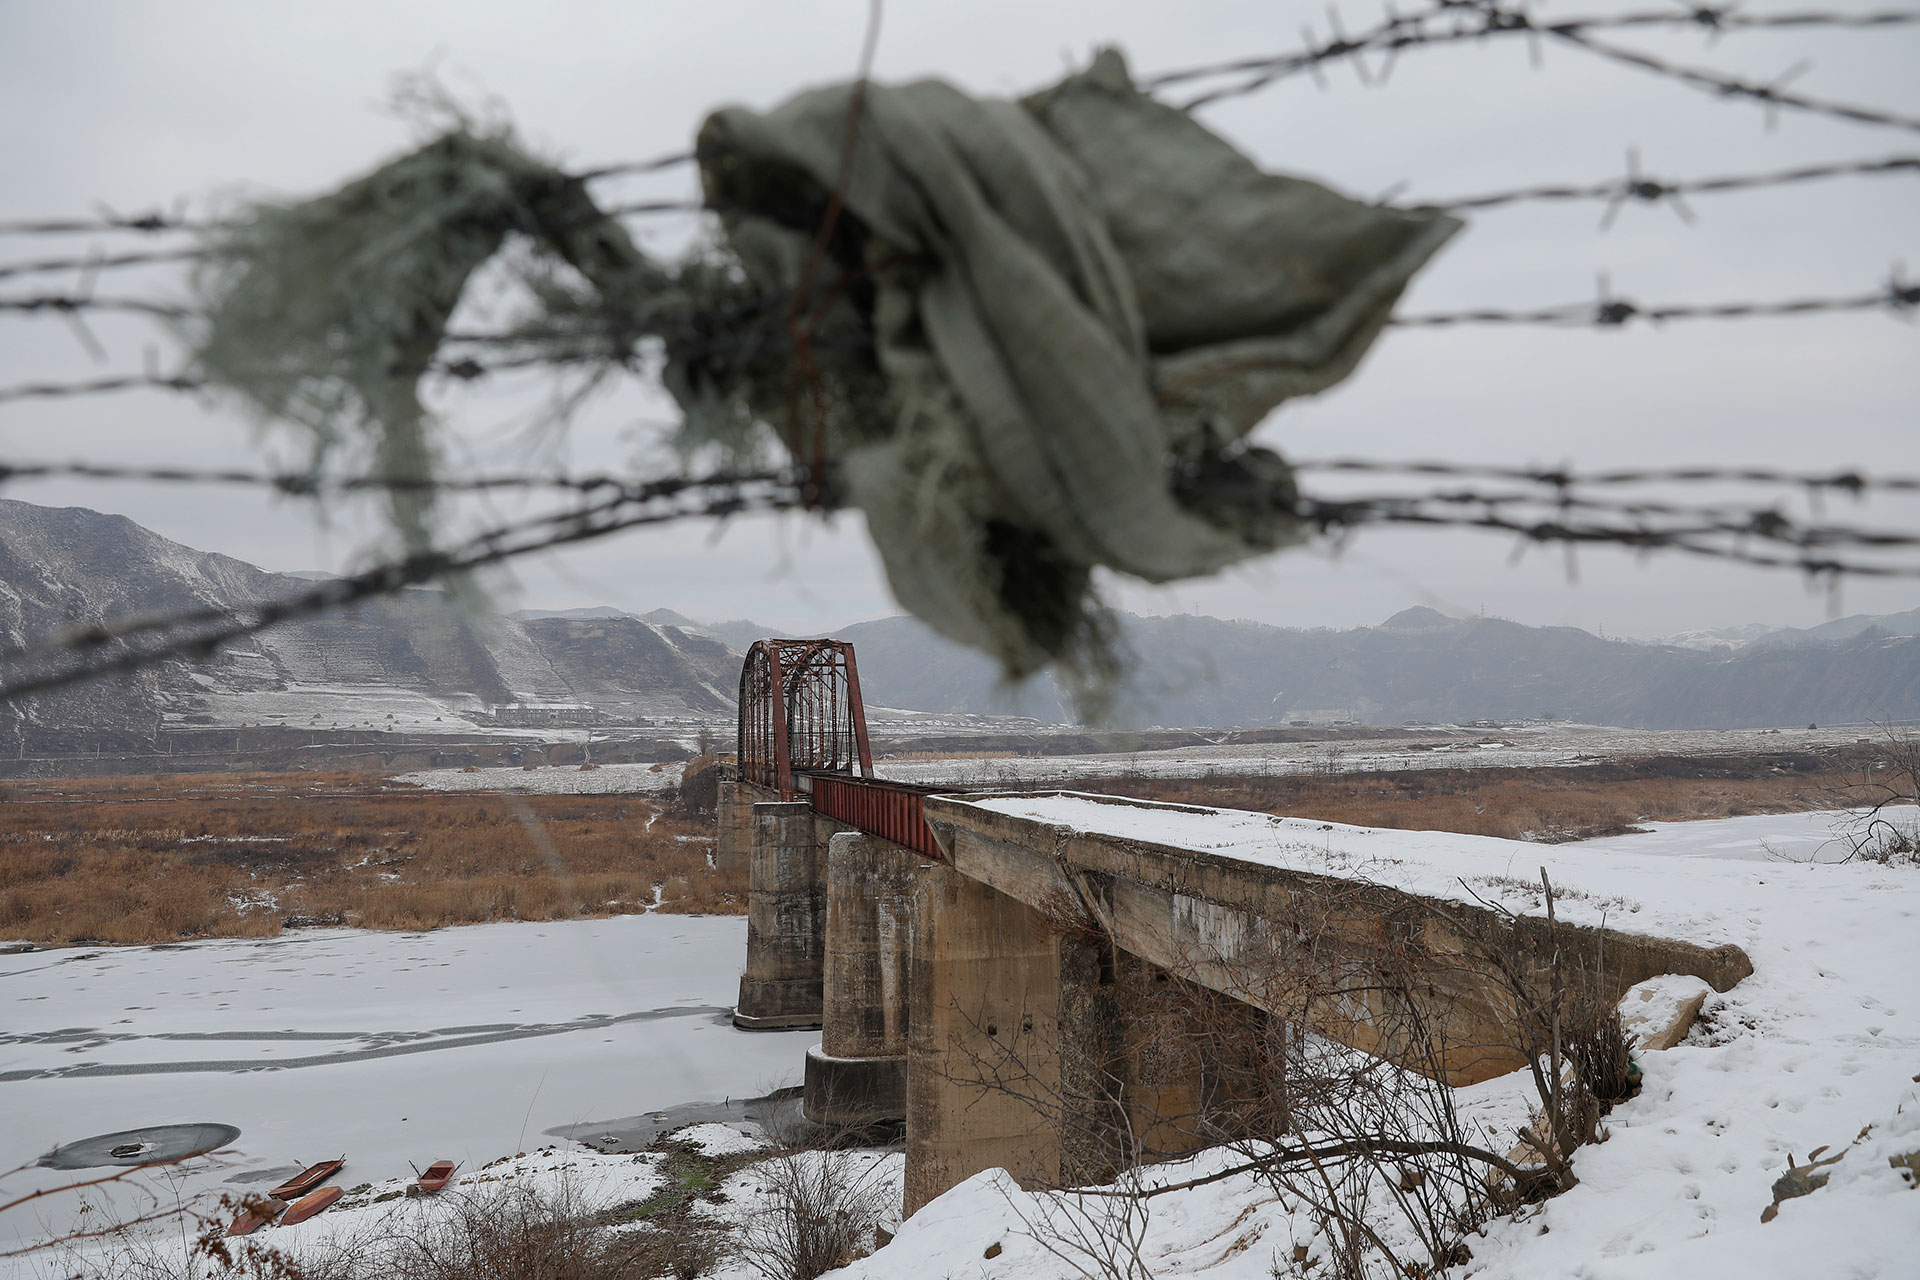 See Ways People Connect Across North Koreas Frontier With China How To Wire A Small Boat Entrance Piece Of Clothing Holds Back Barbed On The Chinese Side Korean Border Below Bridge Boats Wait